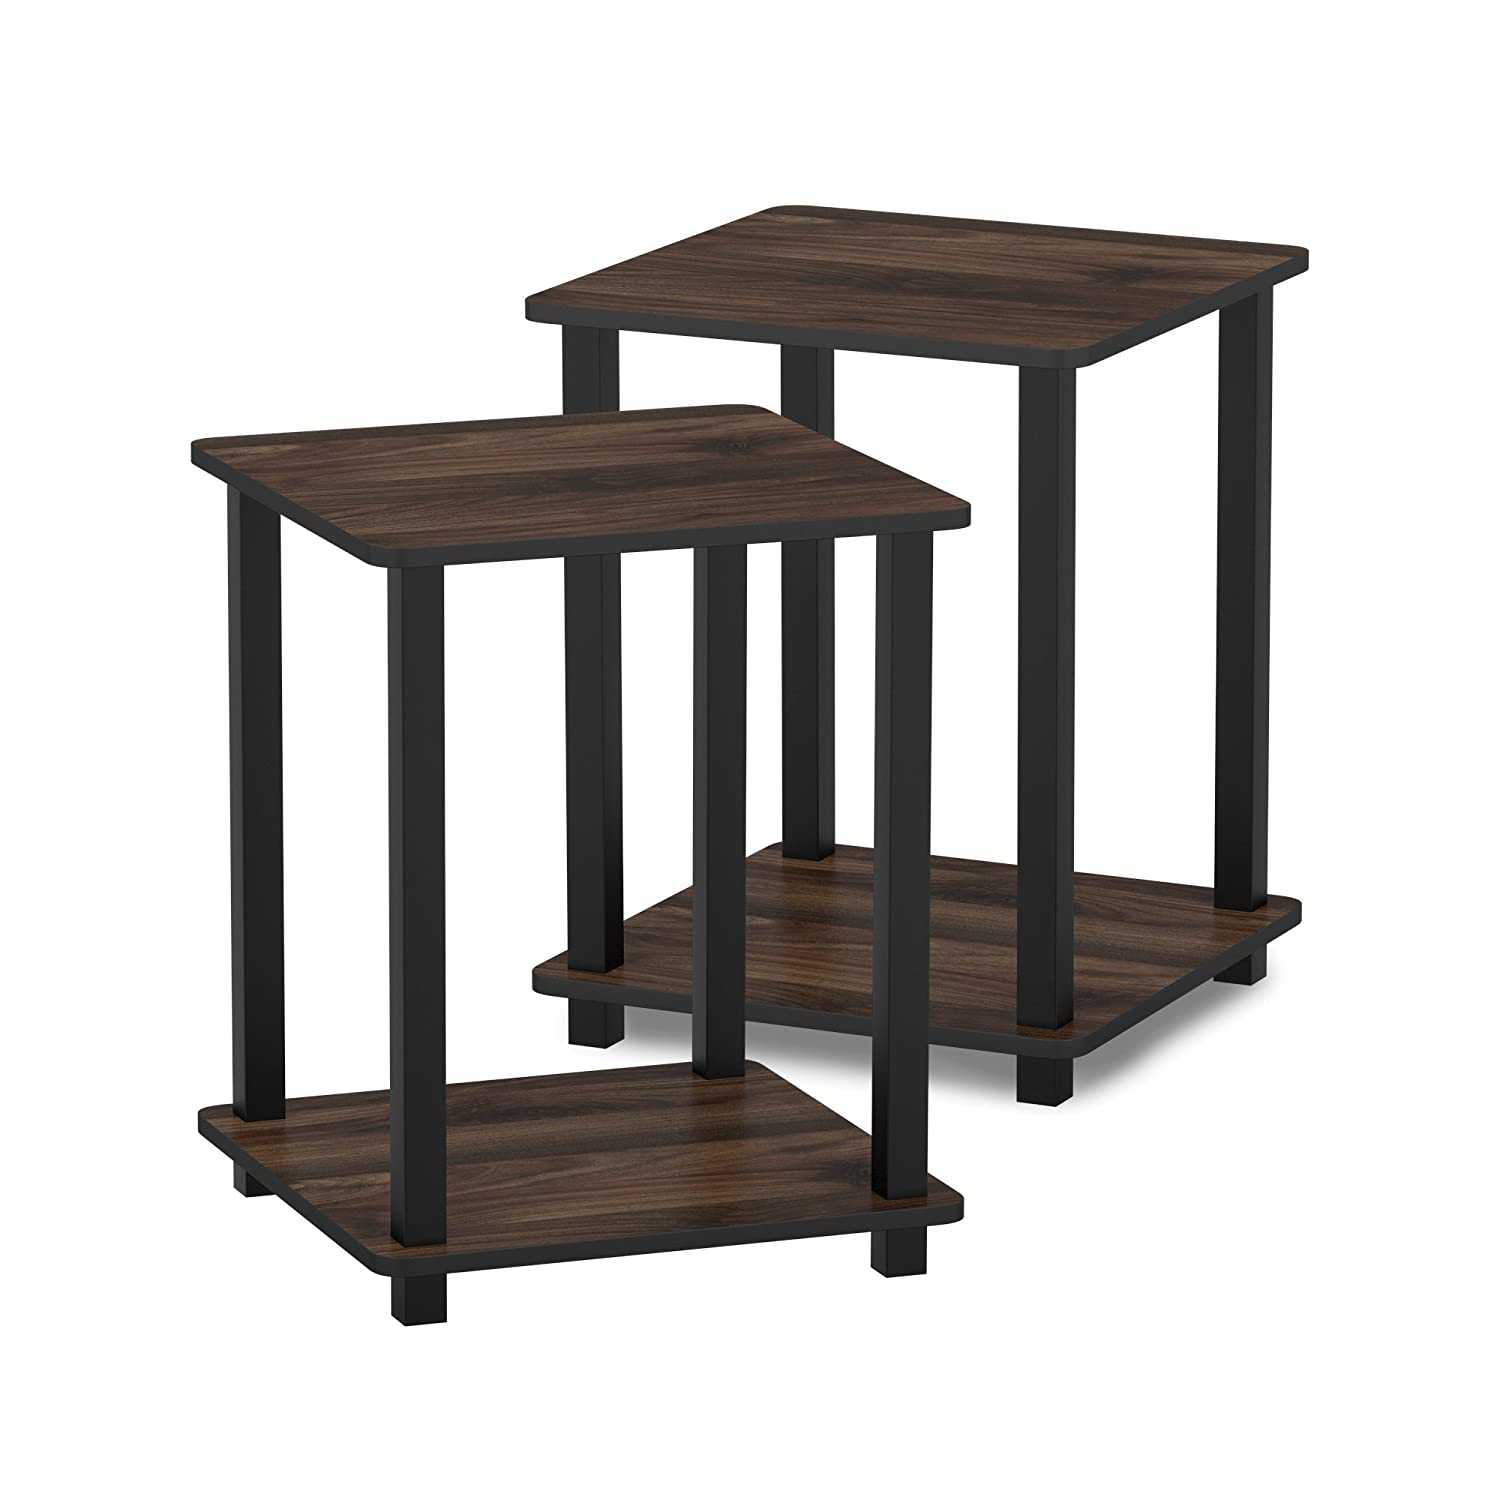 Furinno 12127CWN/BK Turn-S-Tube End Table 2-Pack Columbia Walnut/Black